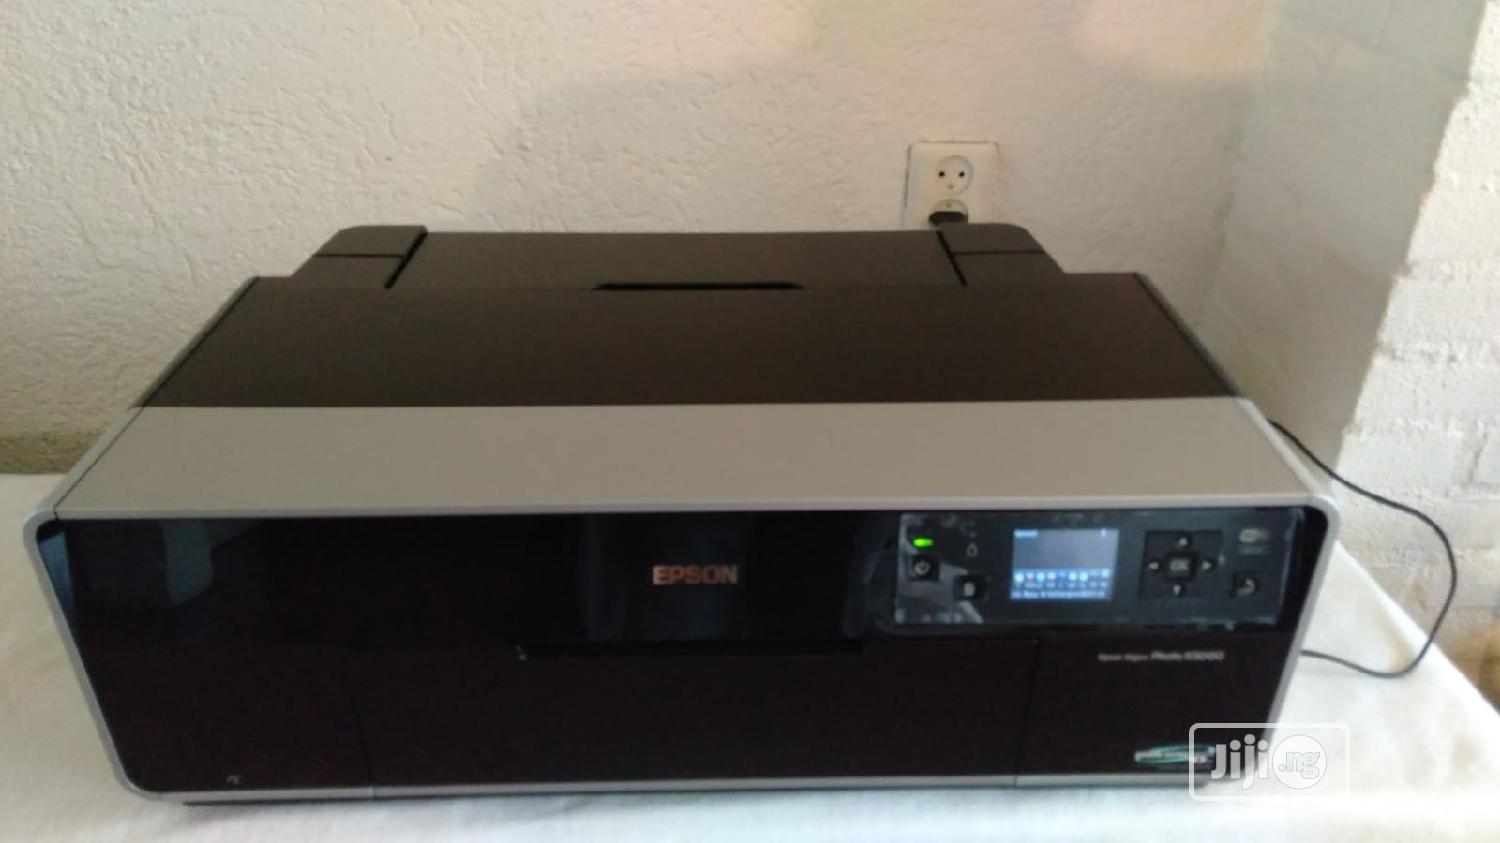 Epson Rseries 3000   Printers & Scanners for sale in Isolo, Lagos State, Nigeria